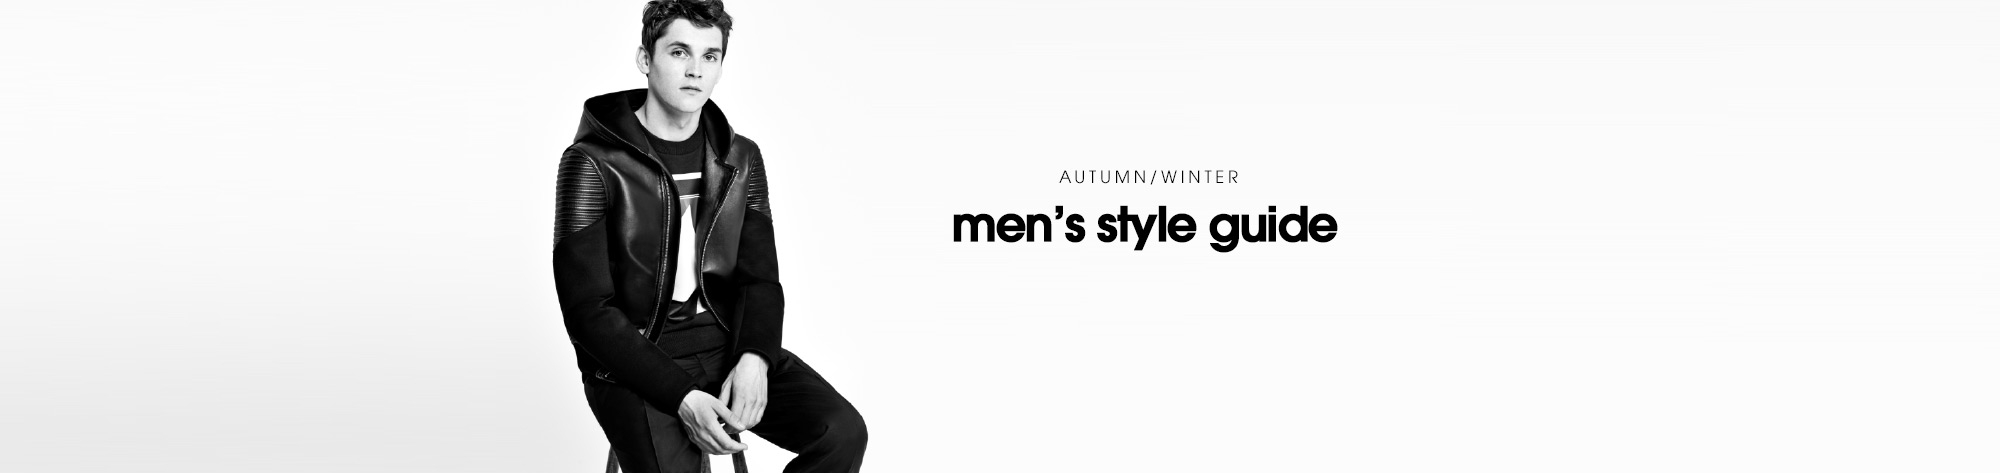 AUTUMN/WINTER men's style guide